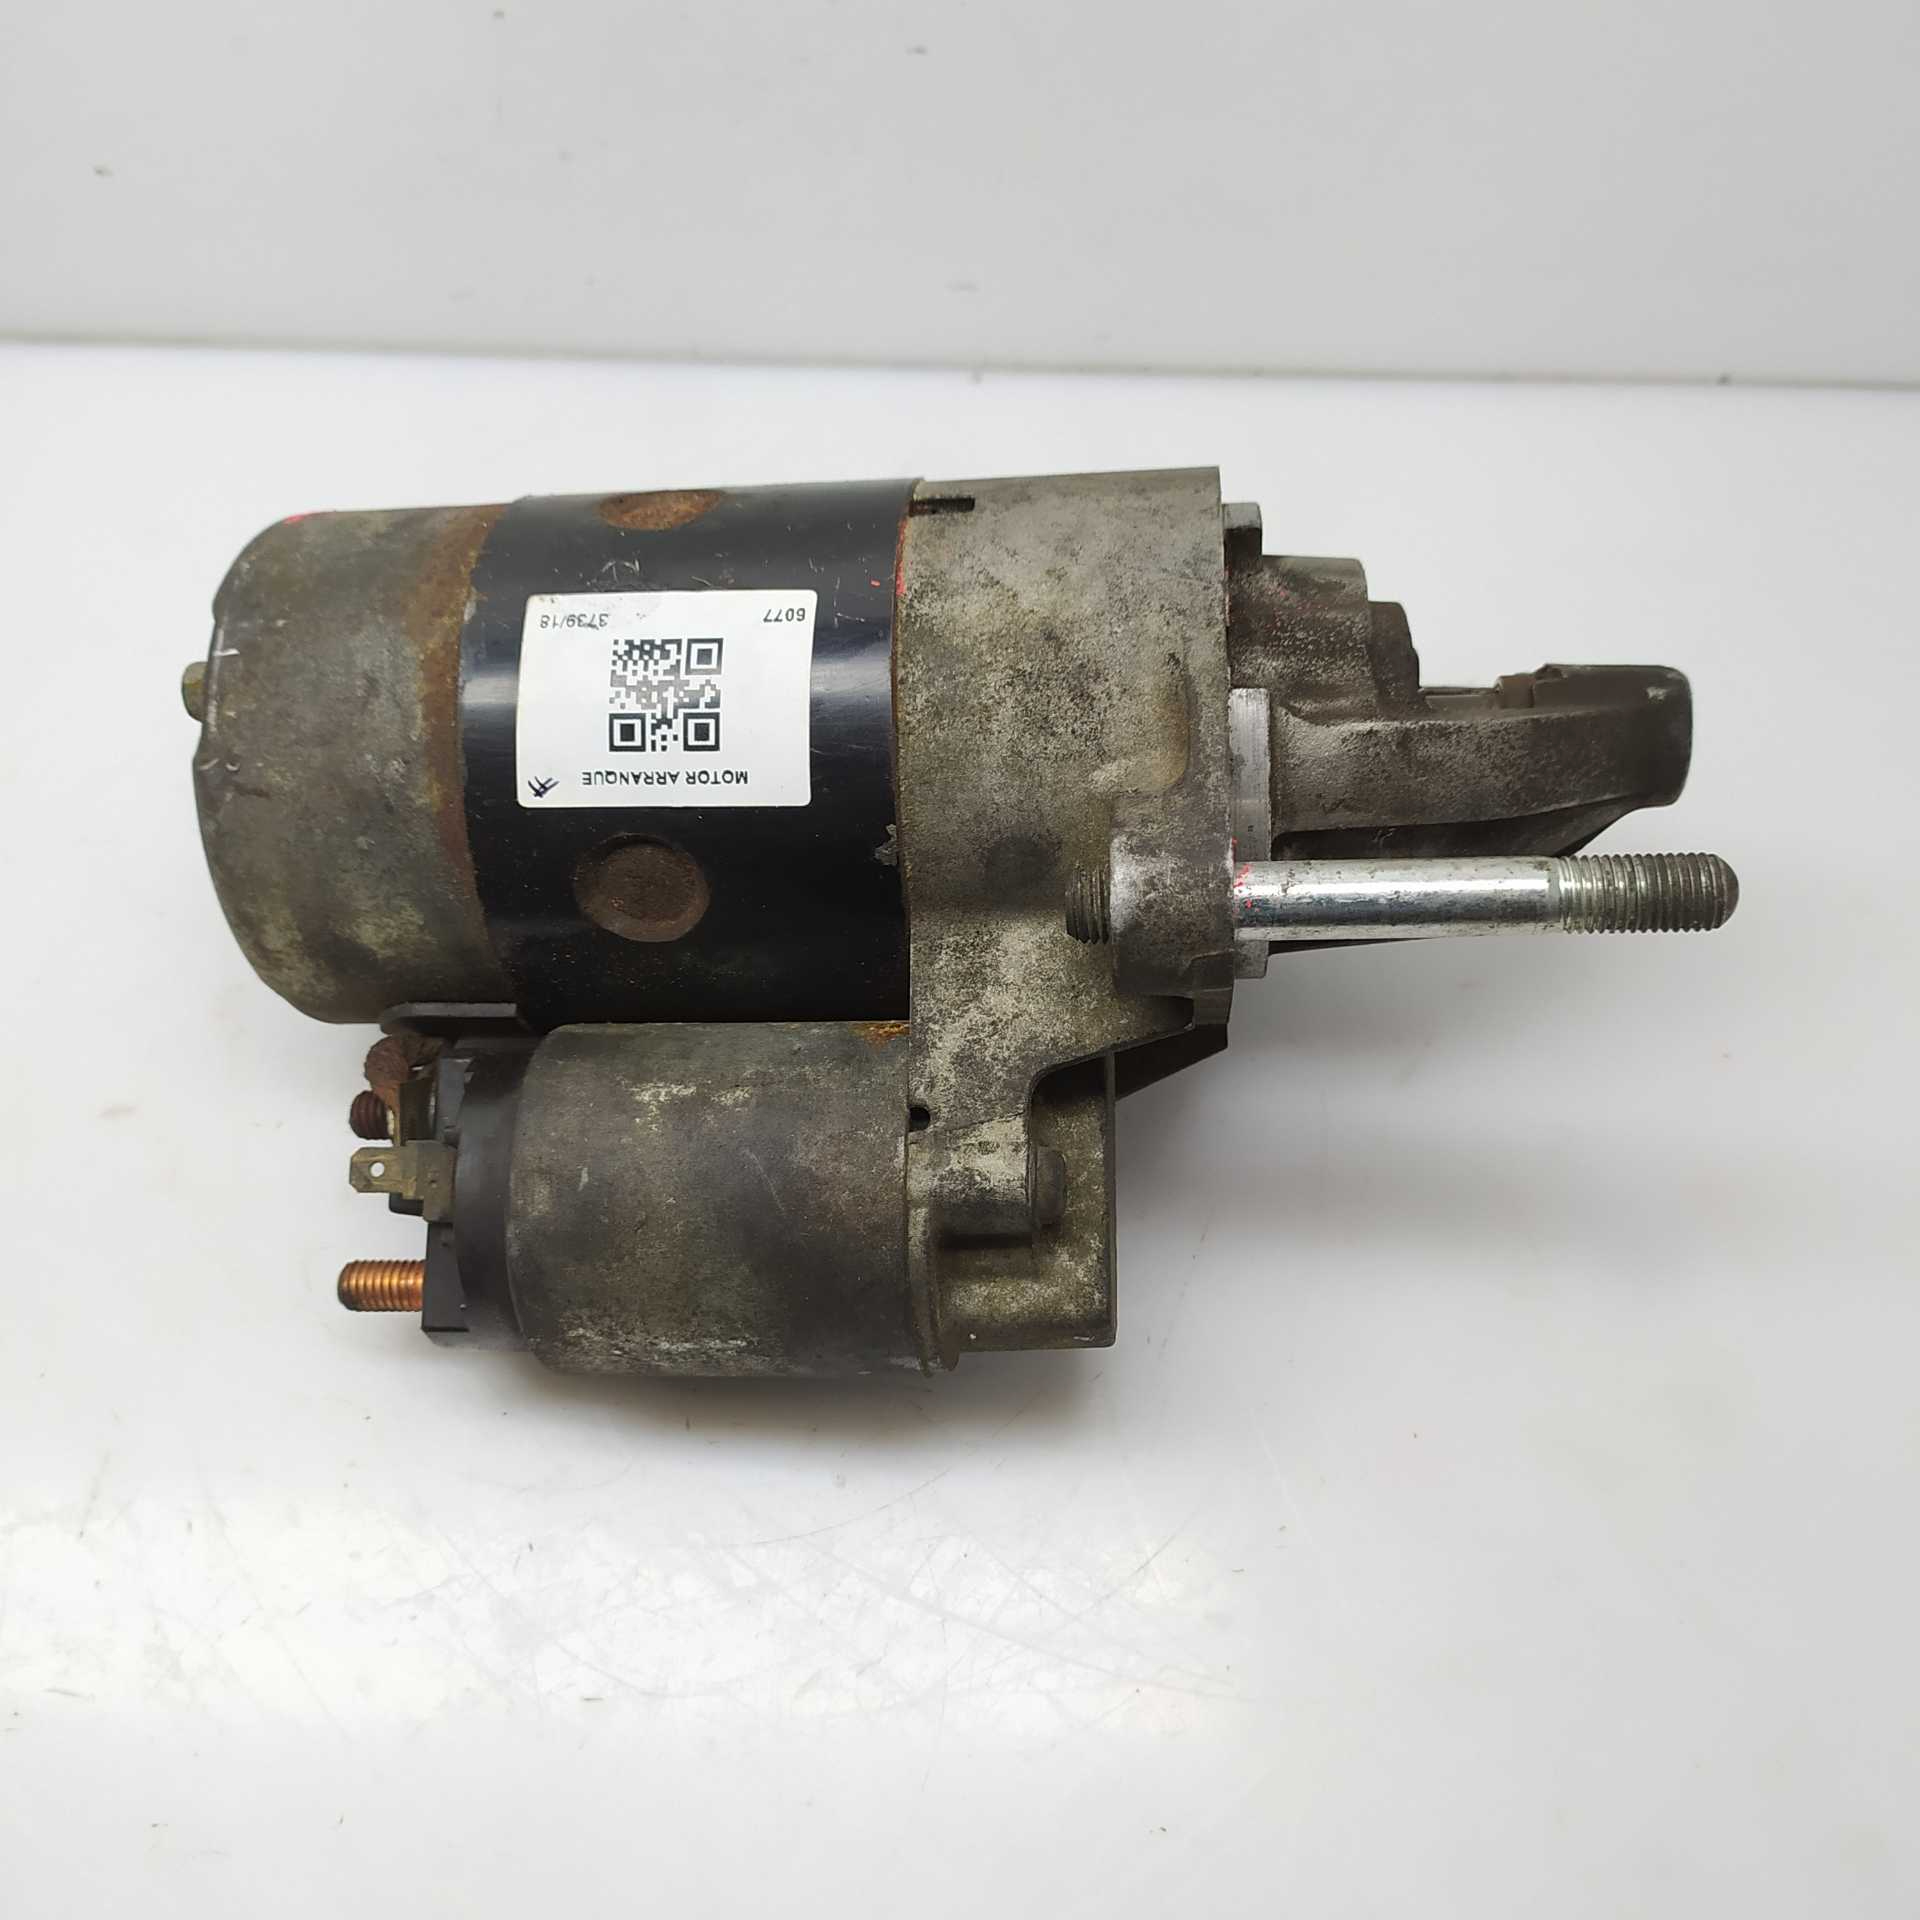 MOTOR ARRANQUE SUZUKI SWIFT III 1.3 (RS 413) (68 KW / 92 CV) (02.2005 - ...)